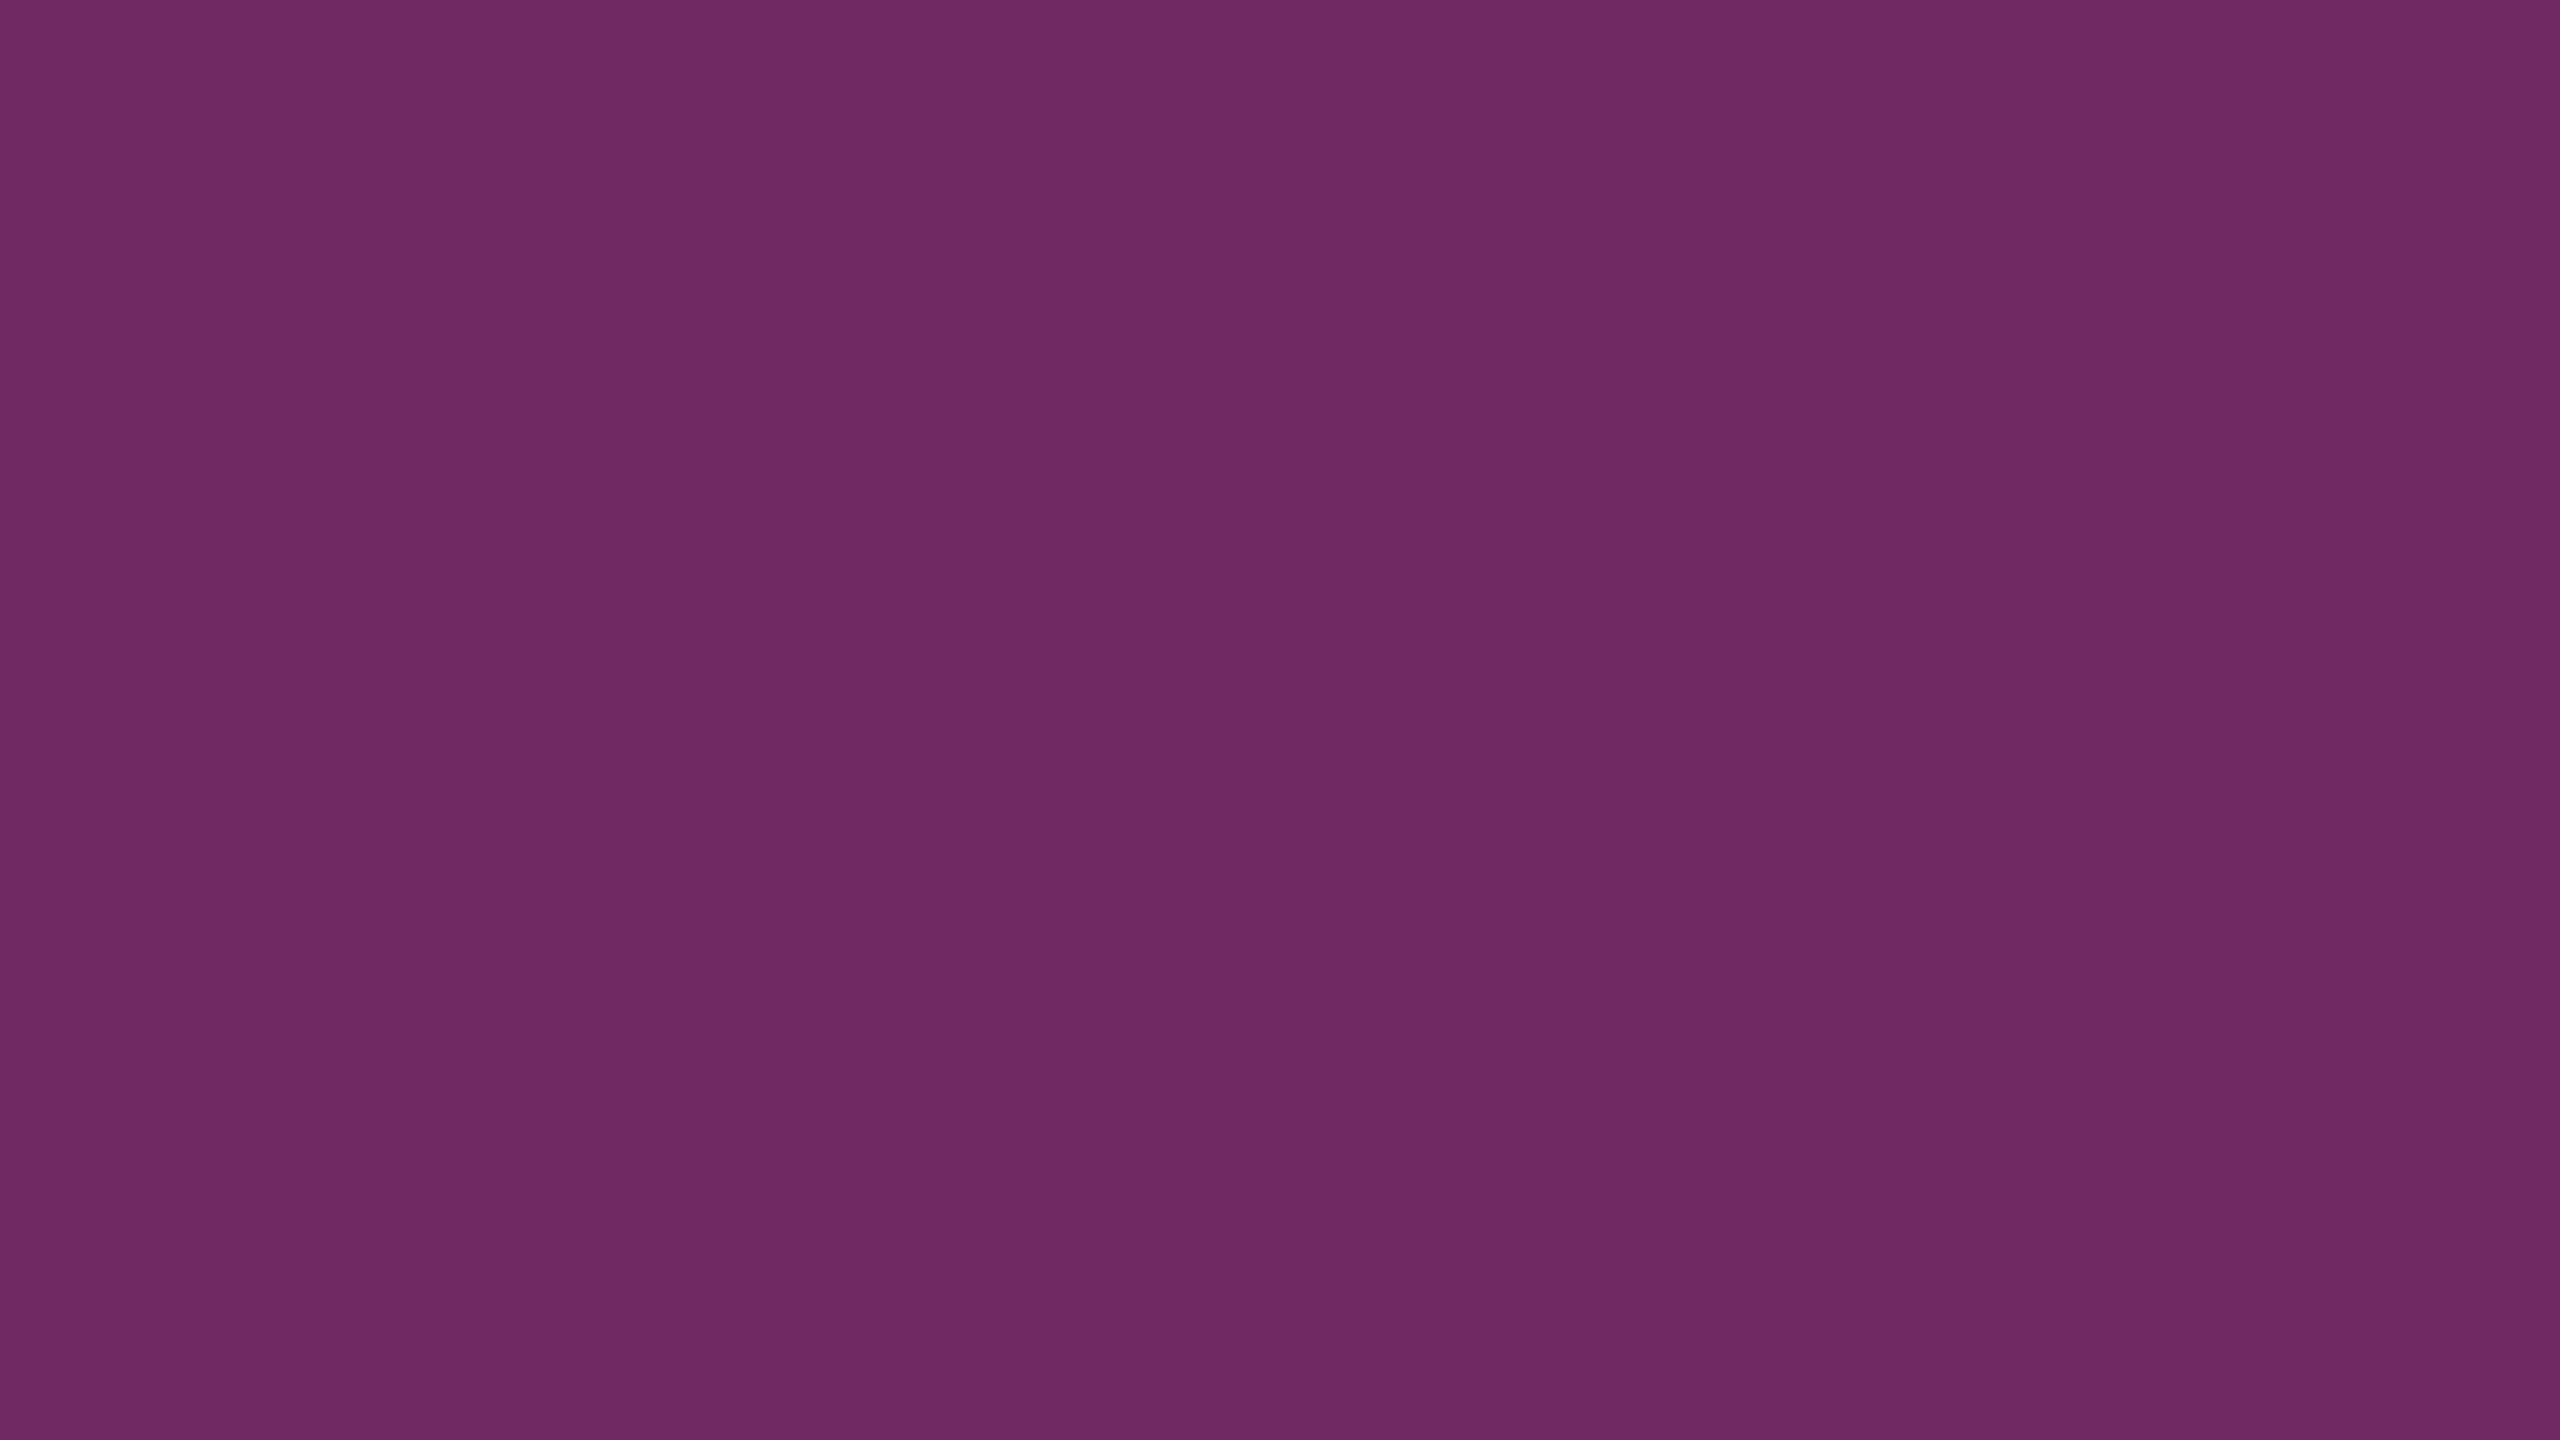 2560x1440 Byzantium Solid Color Background